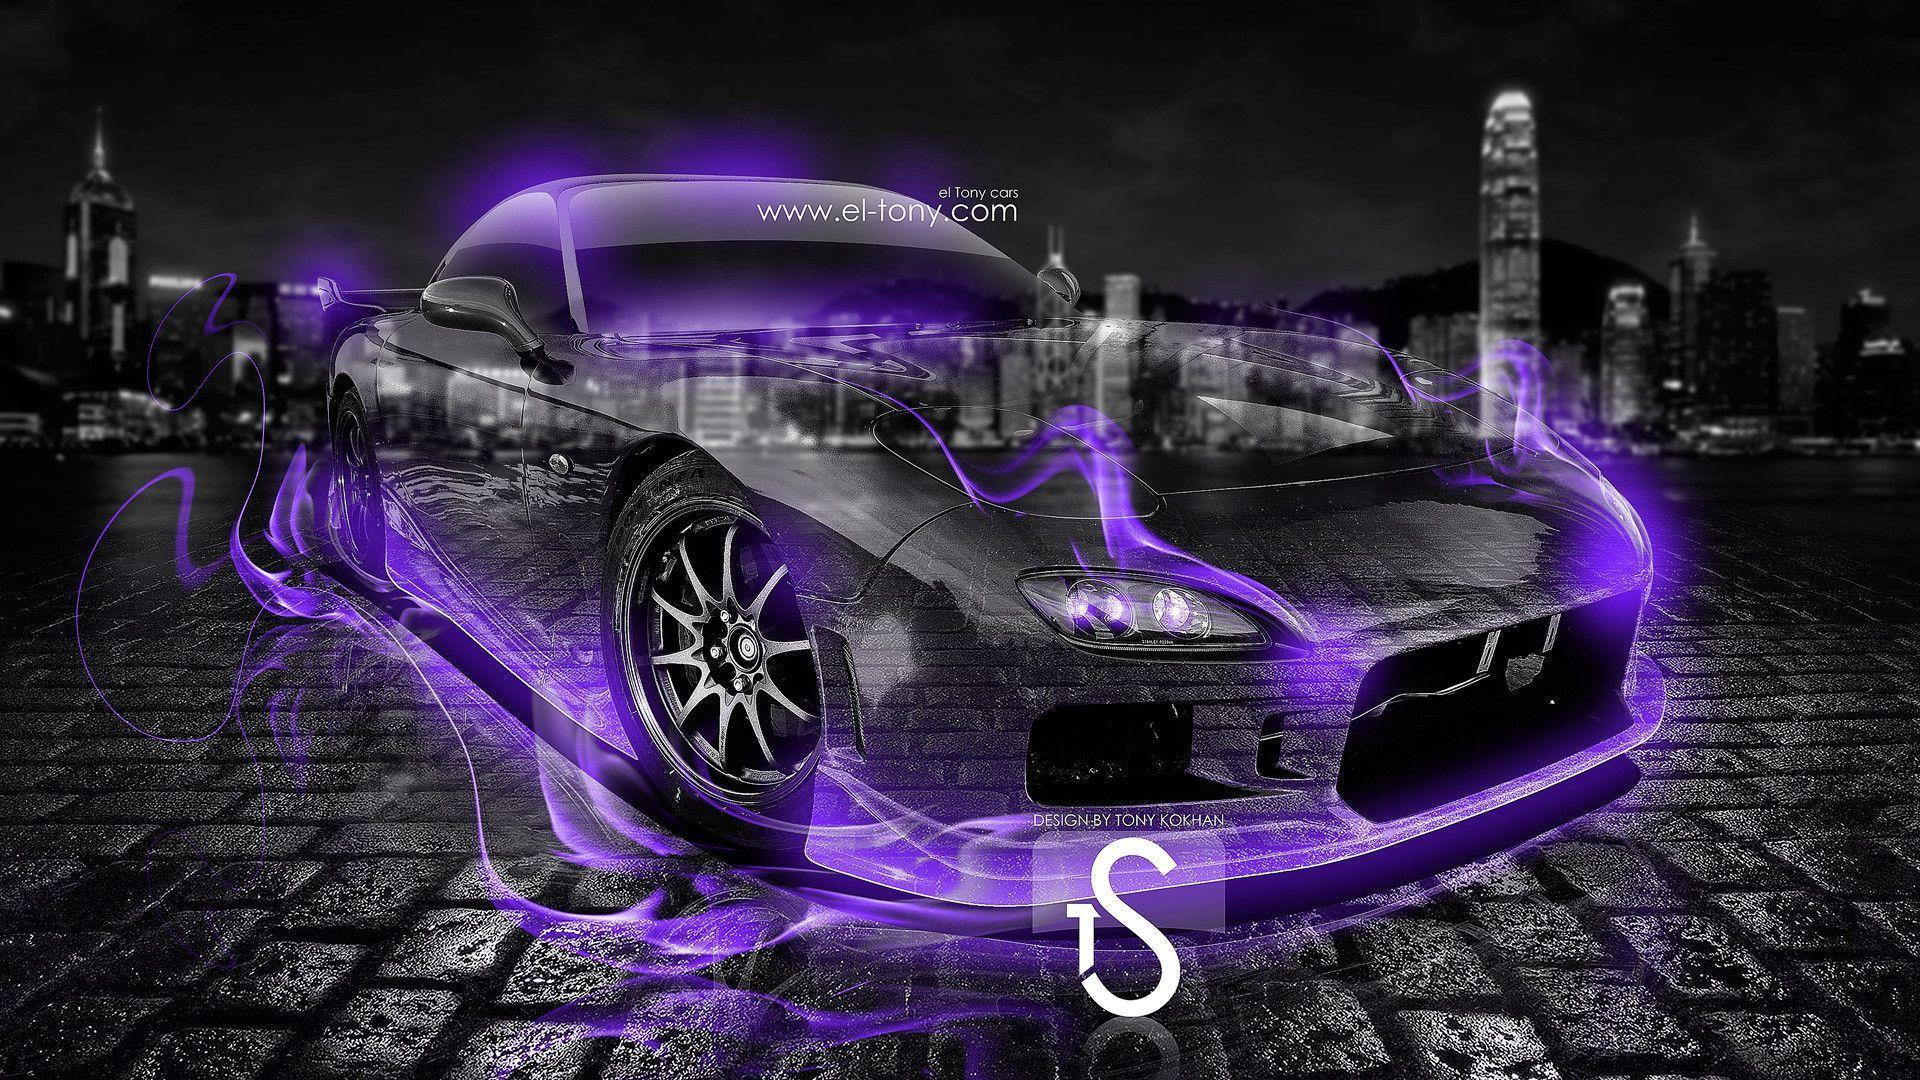 Mazda Rx7 Jdm Side Crystal City Car 2014 Violet Neon Hd Wallpapers